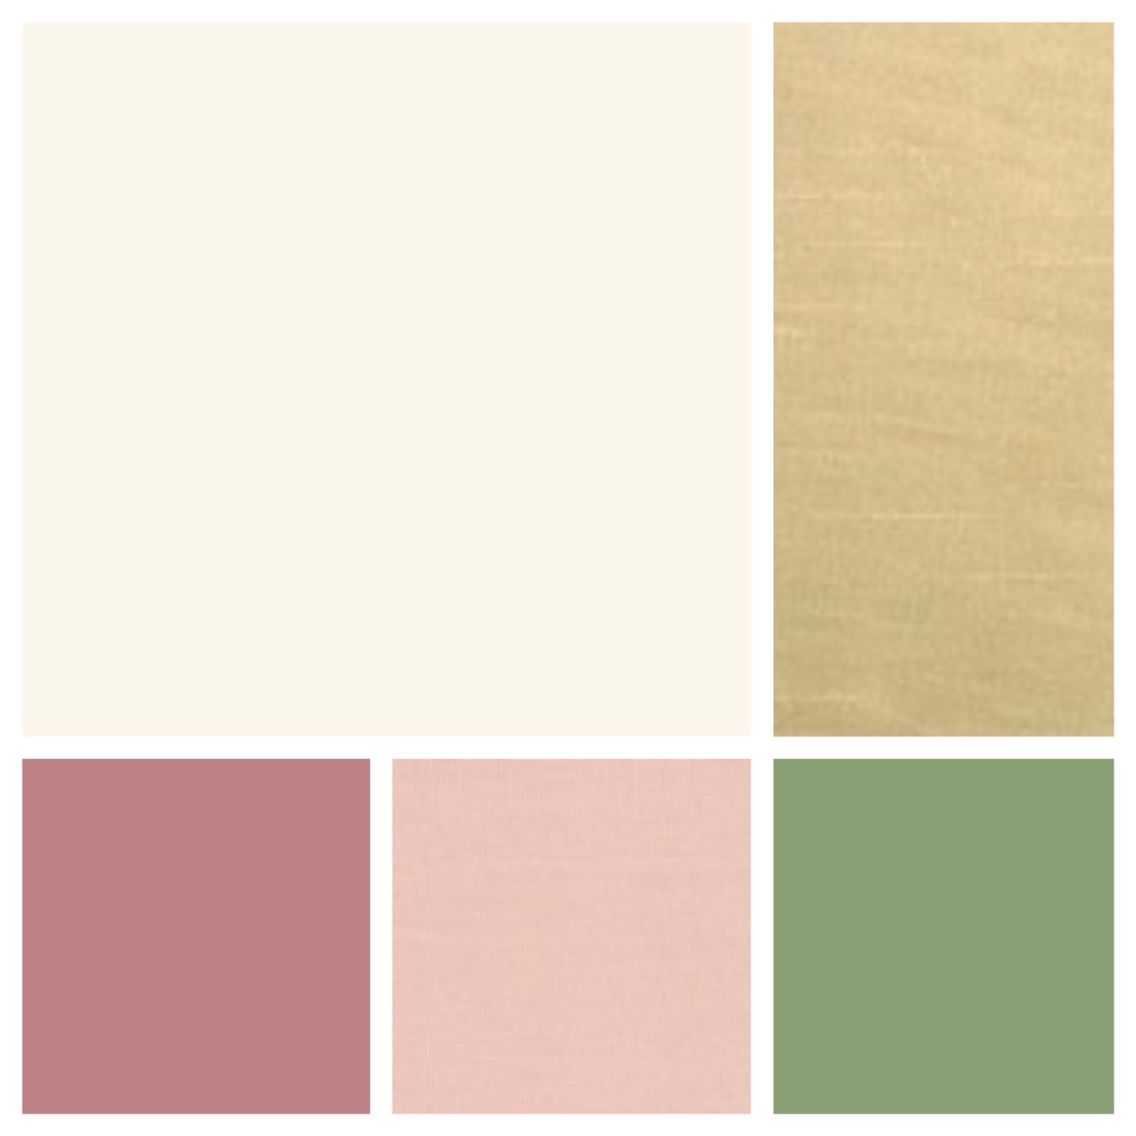 Cream champagne dusty rose blush sage wedding colors - What color is sage green ...